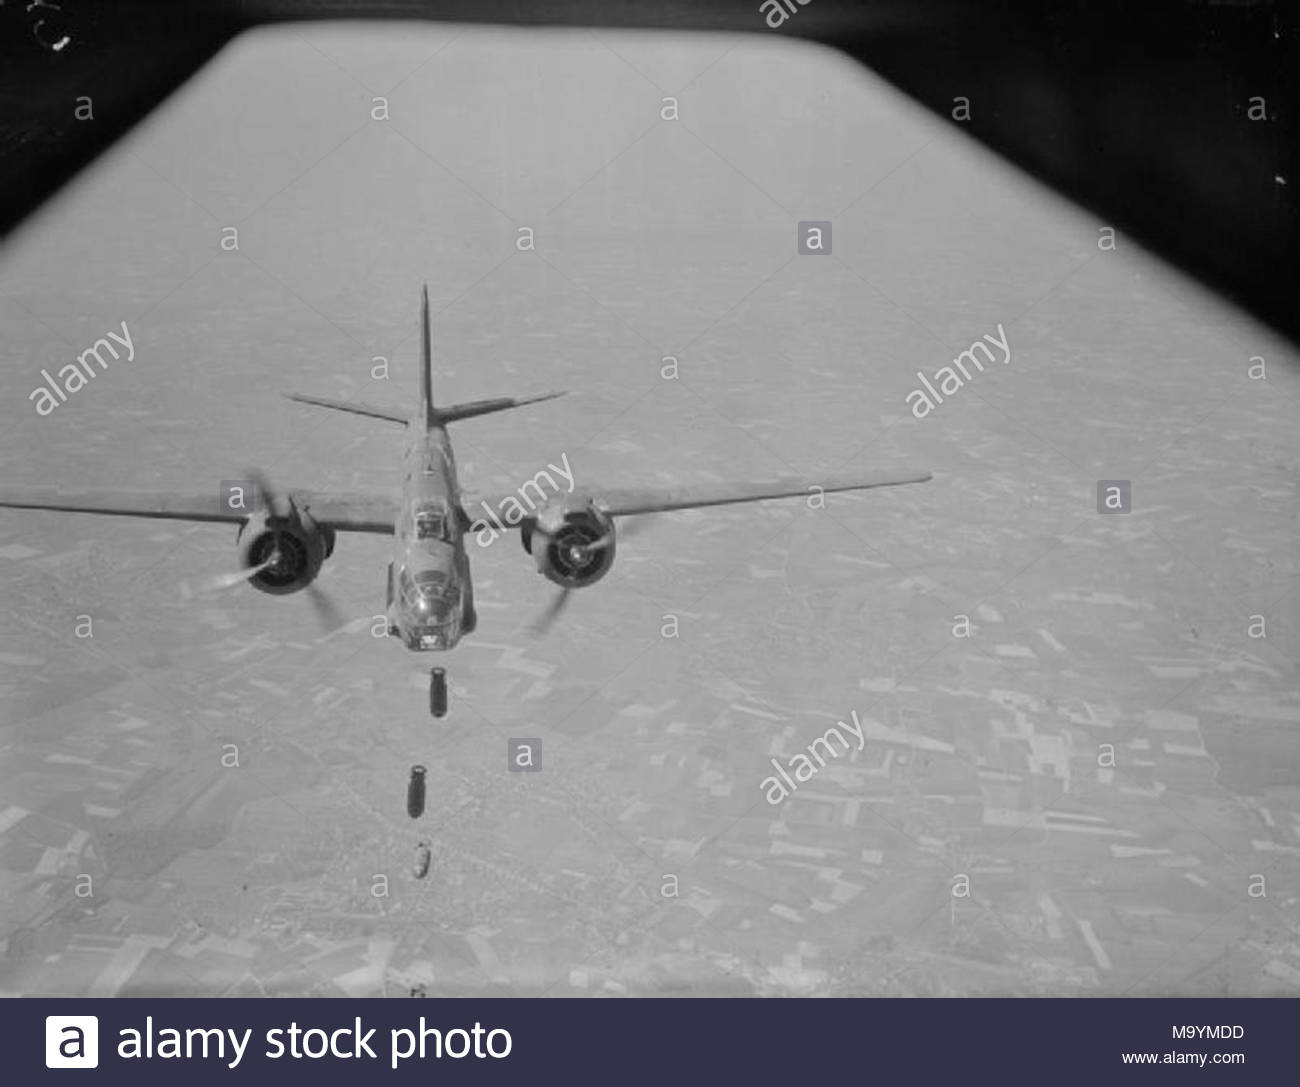 Royal Air Force 2nd Tactical 1943 1945 Douglas Boston Mark III C For Charlie Of No 88 Squadron RAF Drops Its Bombs Over The Target During